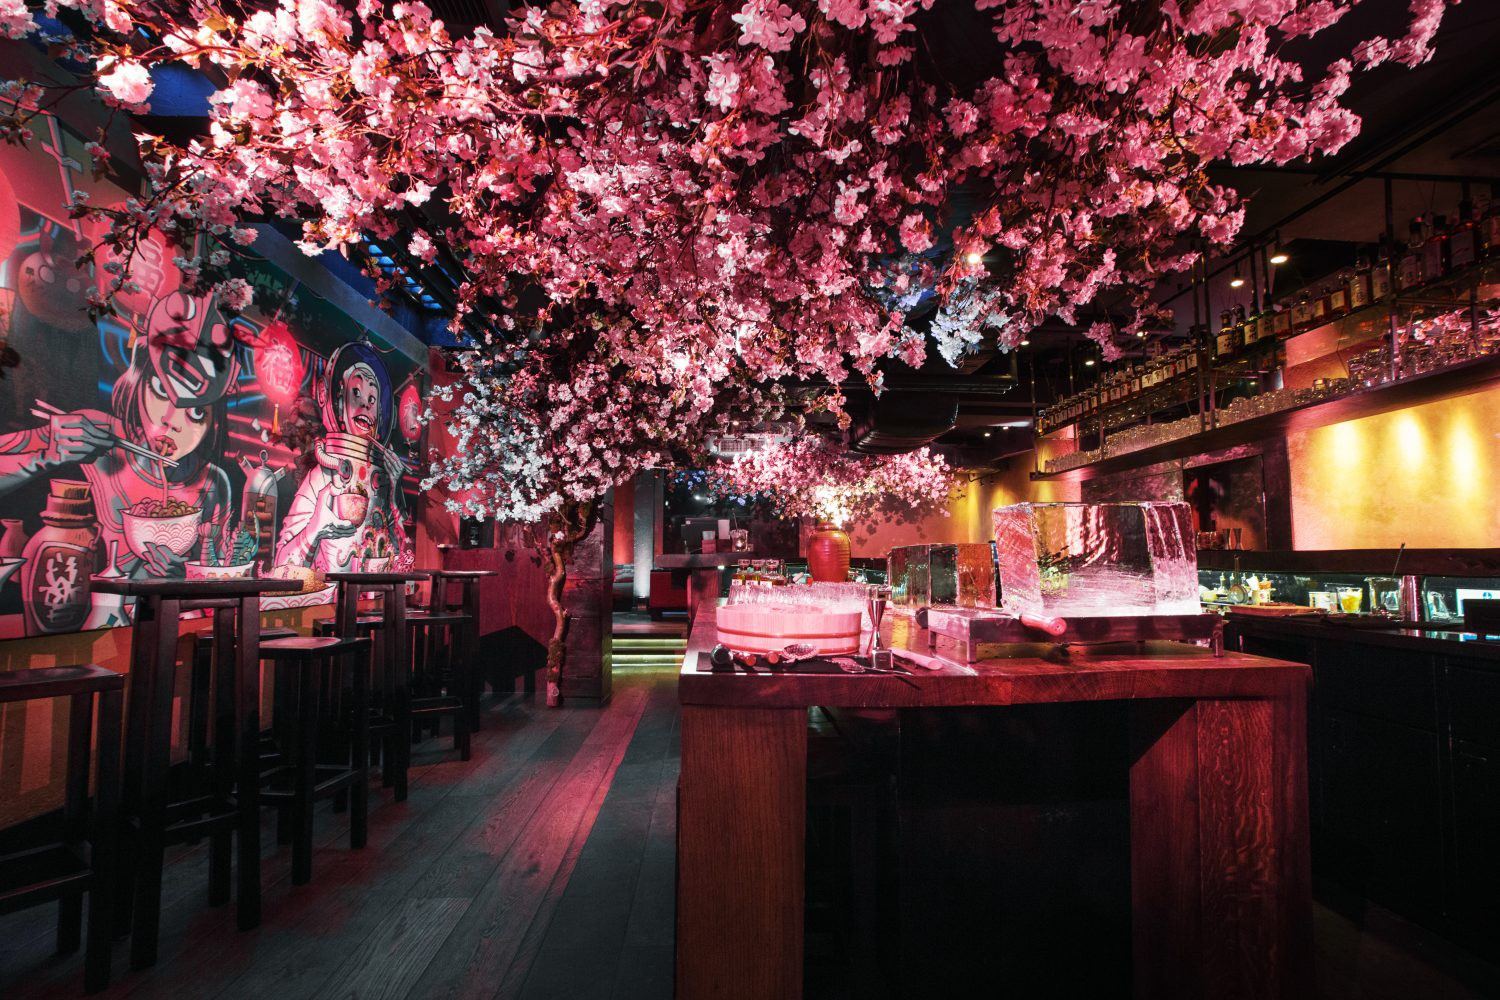 Suntory-Cherry-Blossom-Sakura-in-London-Roka-_Benjamin-Eagle_HighRes-11-1500x1000.jpg